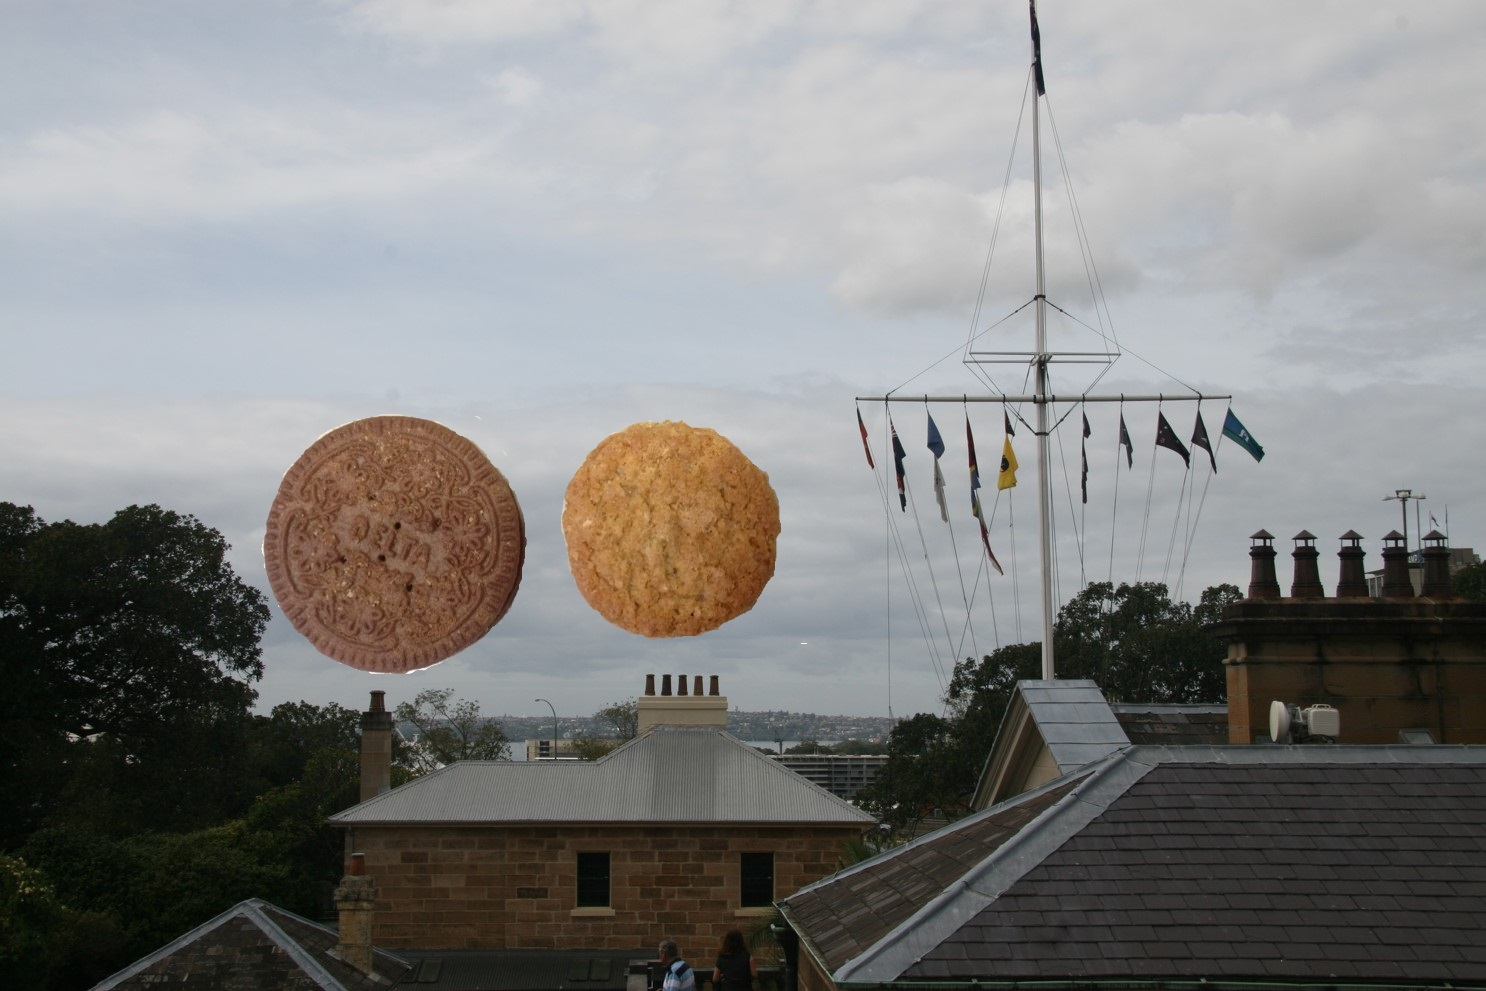 A biscuit and a superbiscuit seen from Sydney Observatory